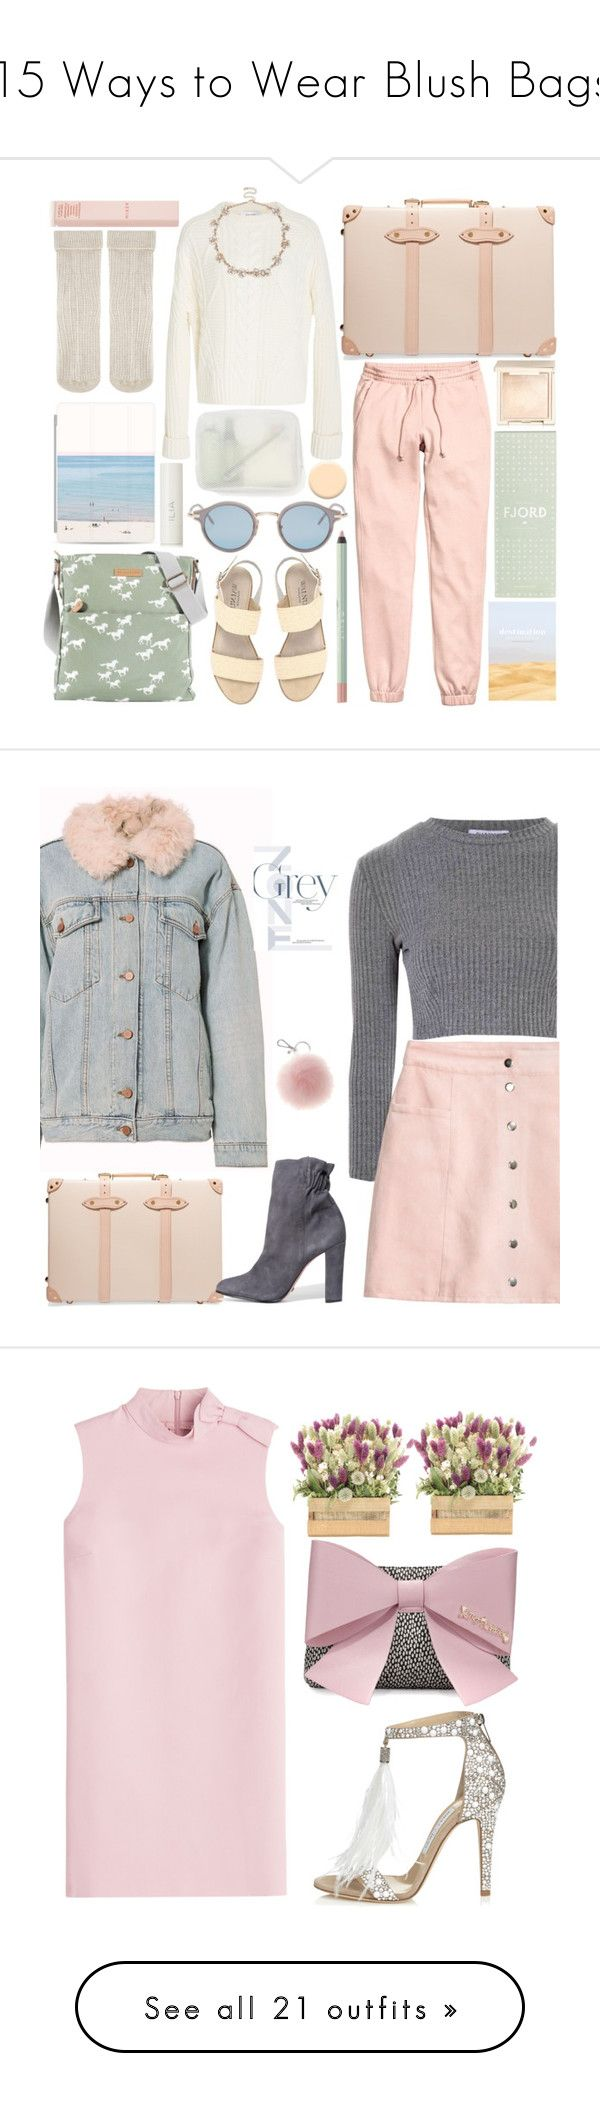 """""""15 Ways to Wear Blush Bags"""" by polyvore-editorial ❤ liked on Polyvore featuring waystowear, blushbags, Brakeburn, Walnut Melbourne, Skandinavisk, Casetify, Carven, Muji, H&M and Thom Browne"""